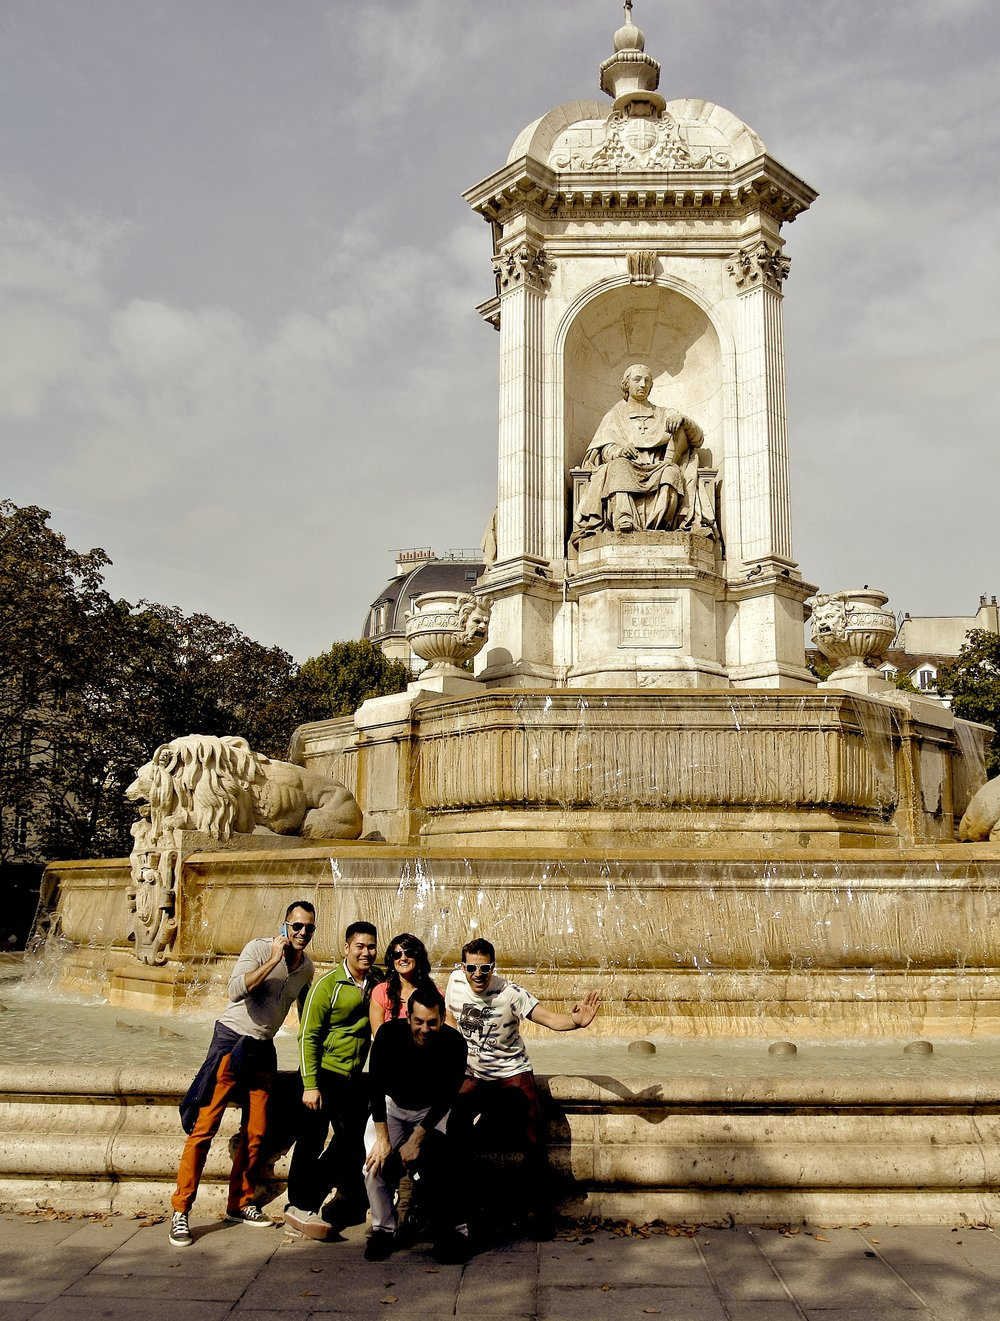 The fountain was built by Louis Visconti in the mid-1800s